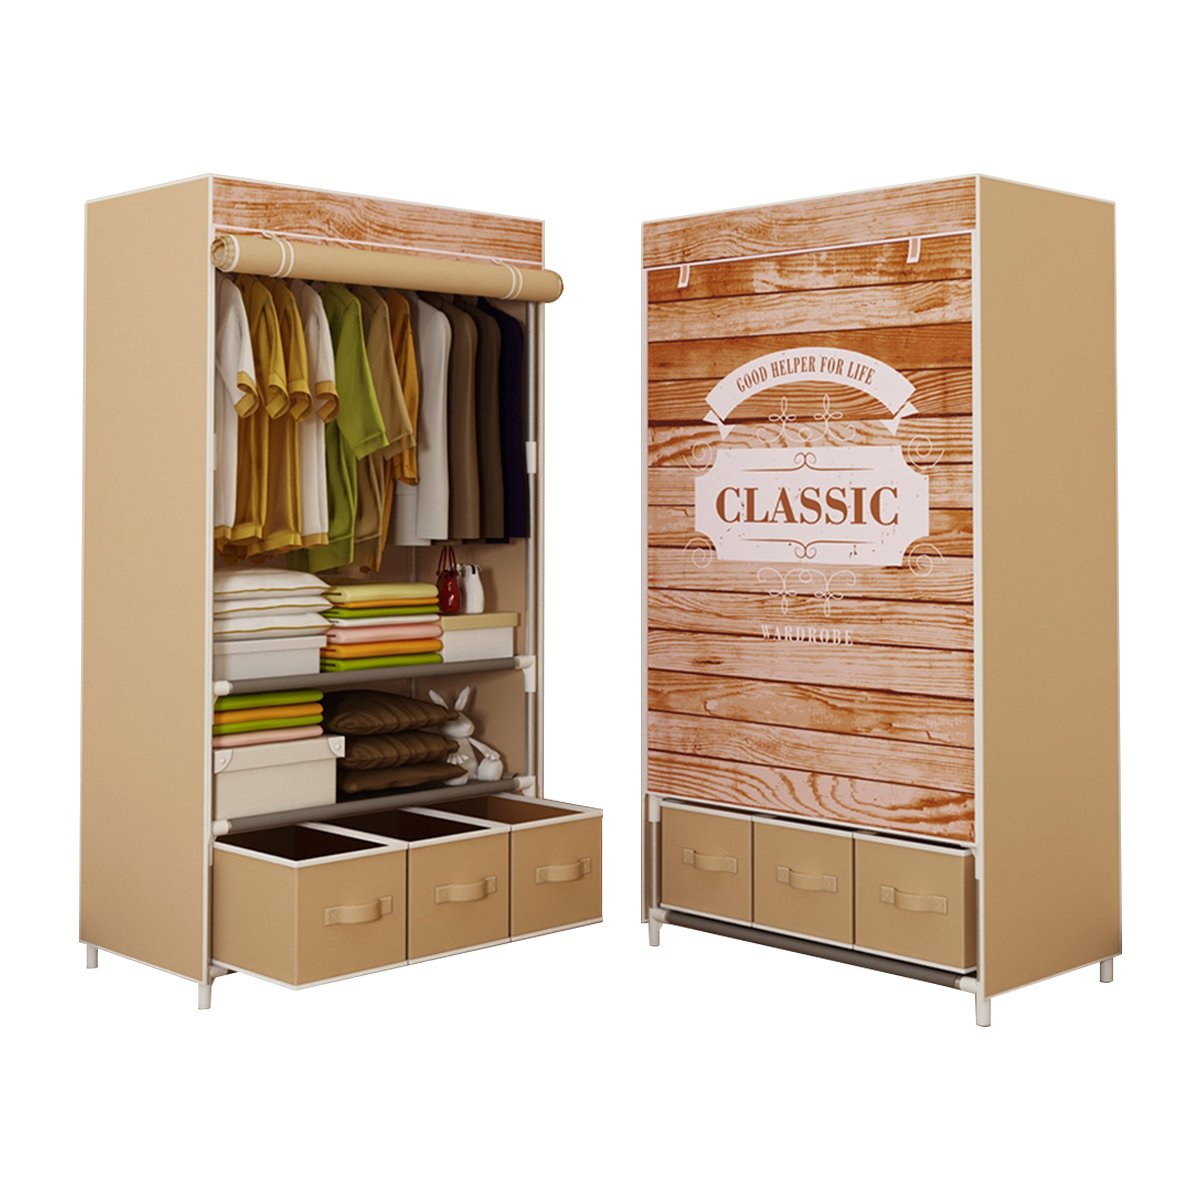 ASSICA Portable Clothes Closet Rolling Door Wardrobe Sturdy Rust-Proof Stainless Steel Frame Non-Woven Fabric Storage Organizer with Three Drawer Boxes (Yellow)